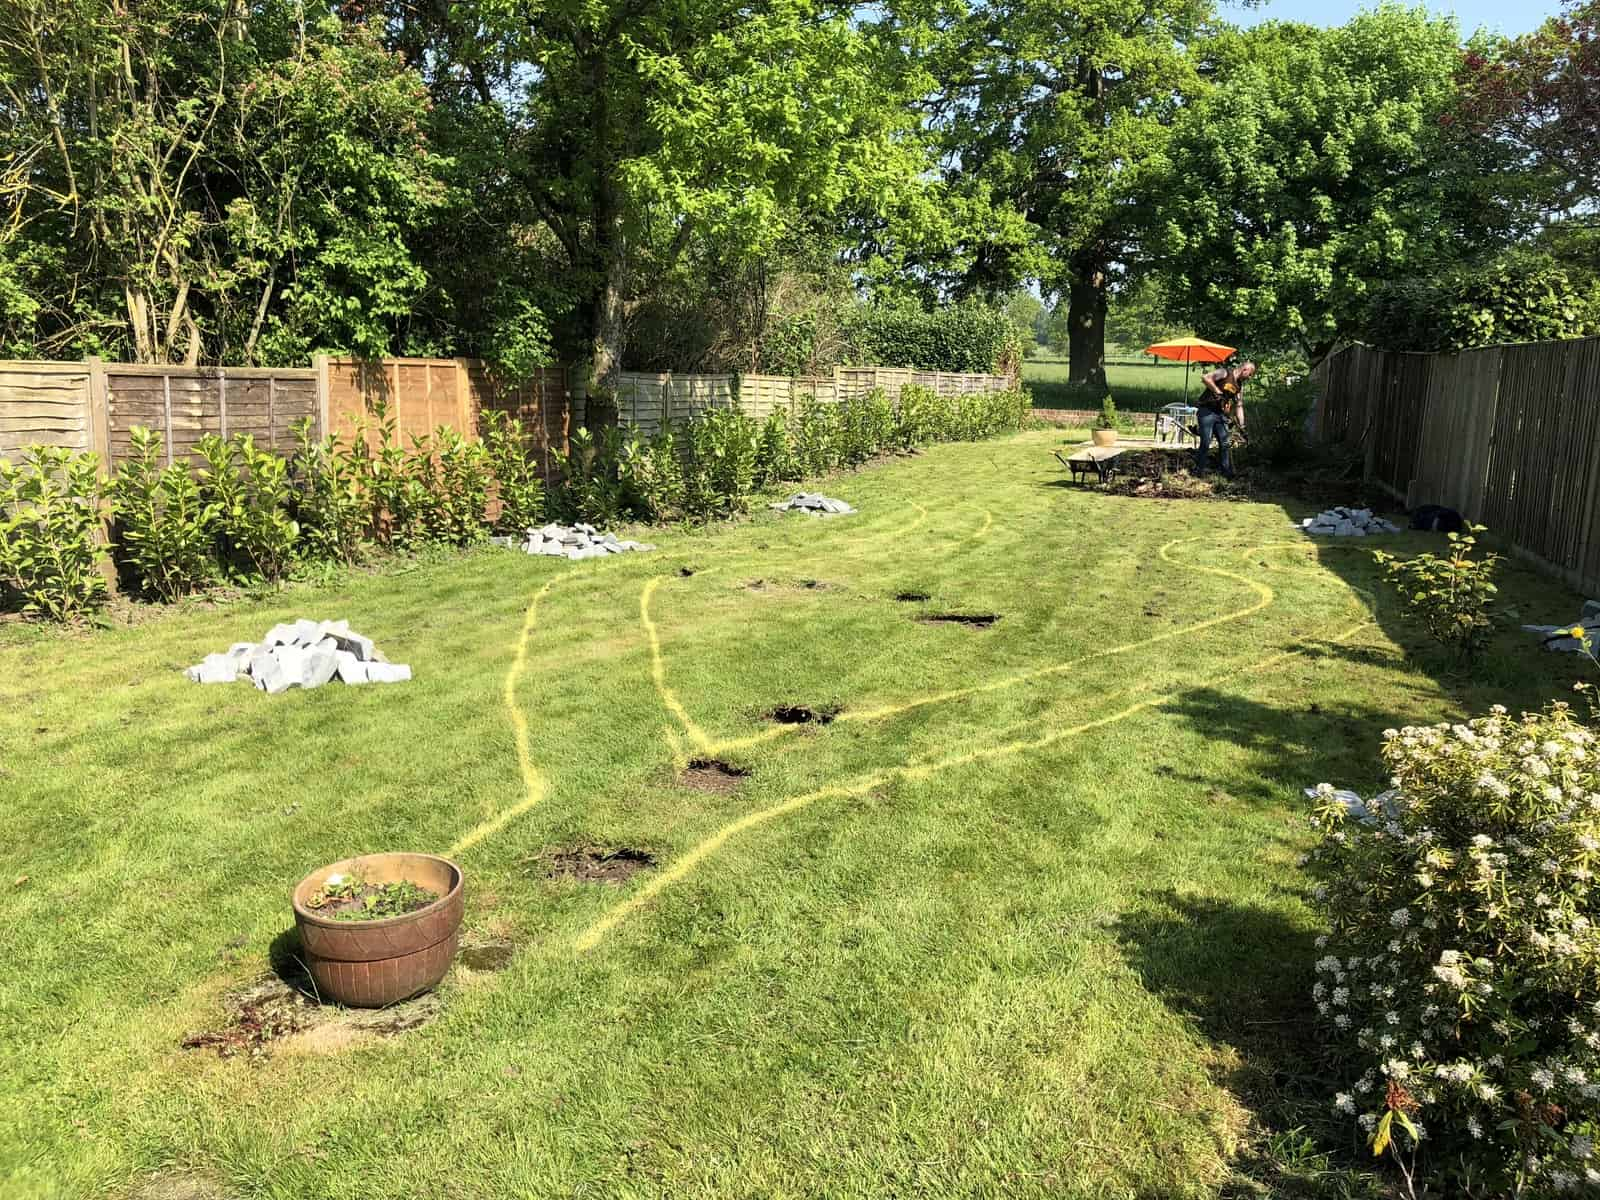 garden pathway to be constructed here